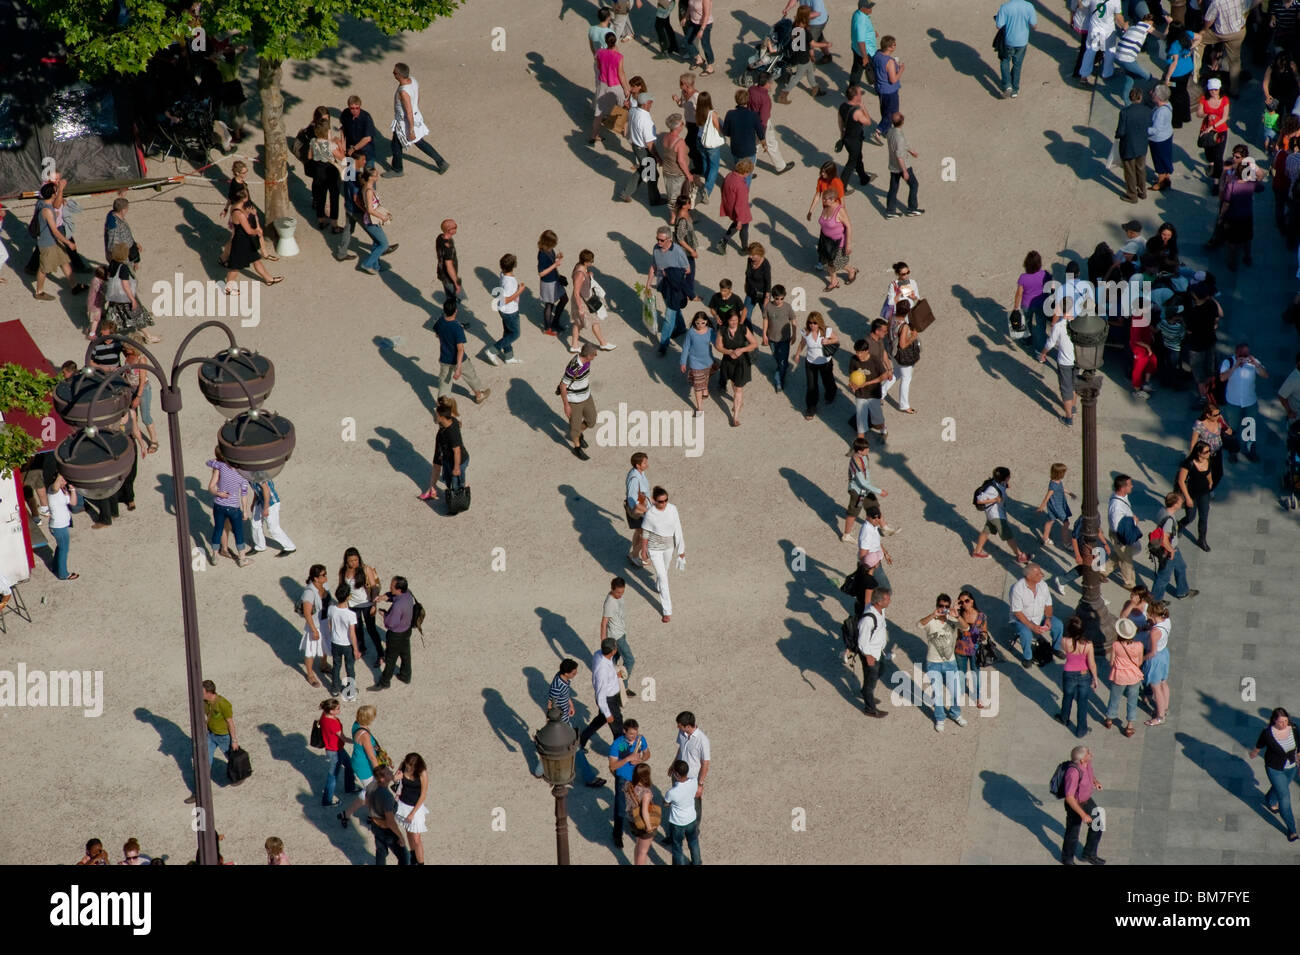 Crowd Scene, Overview, from (Arc de Tri-omphe), aerial